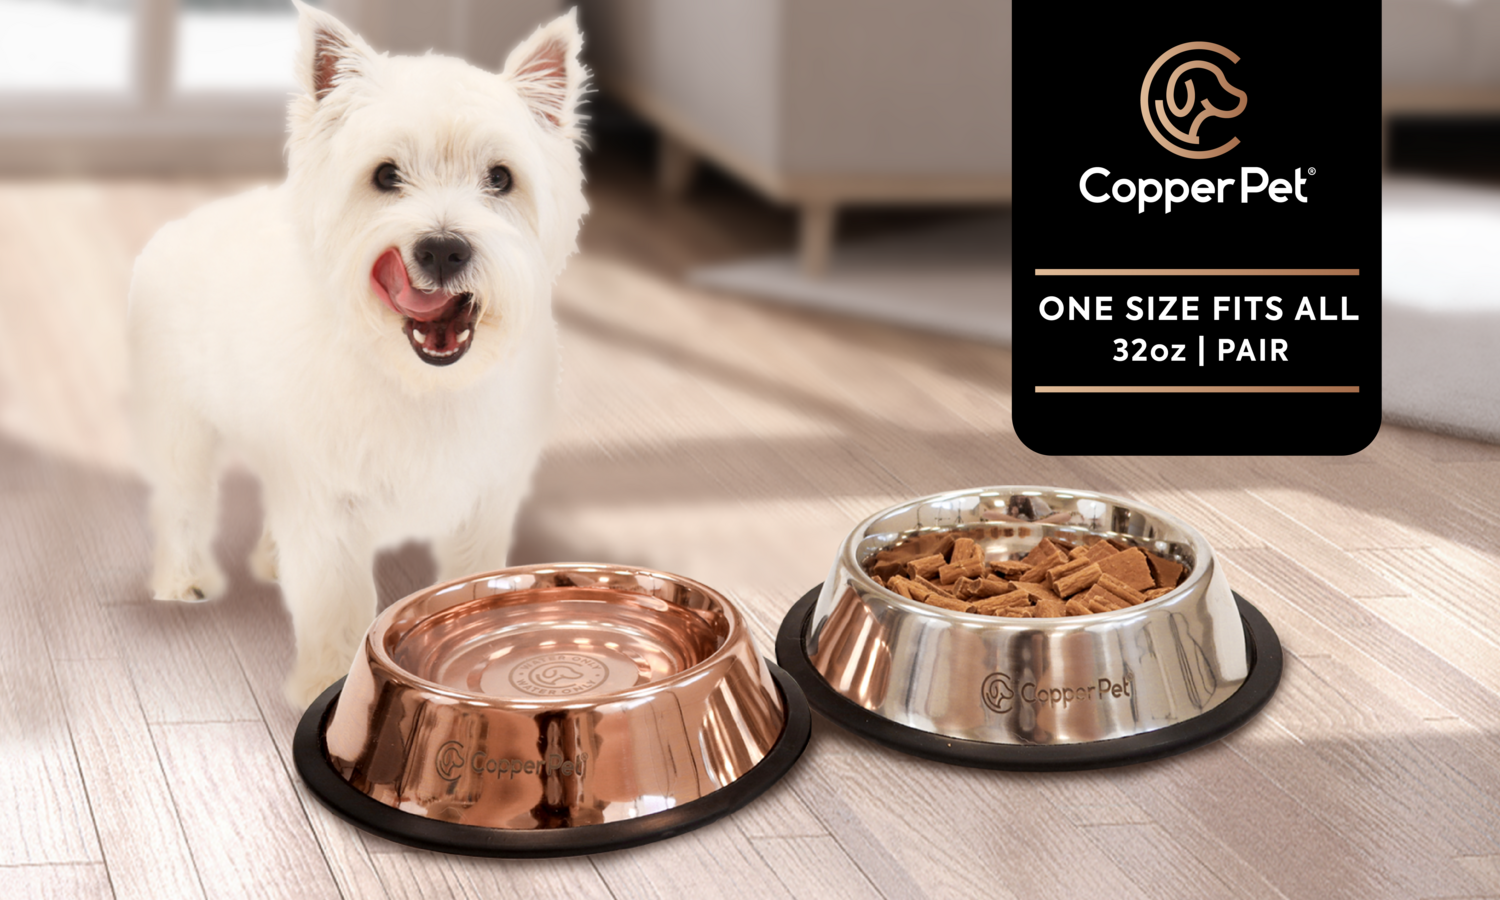 Copper Water Bowl and Stainless Steel Food Bowl Pair